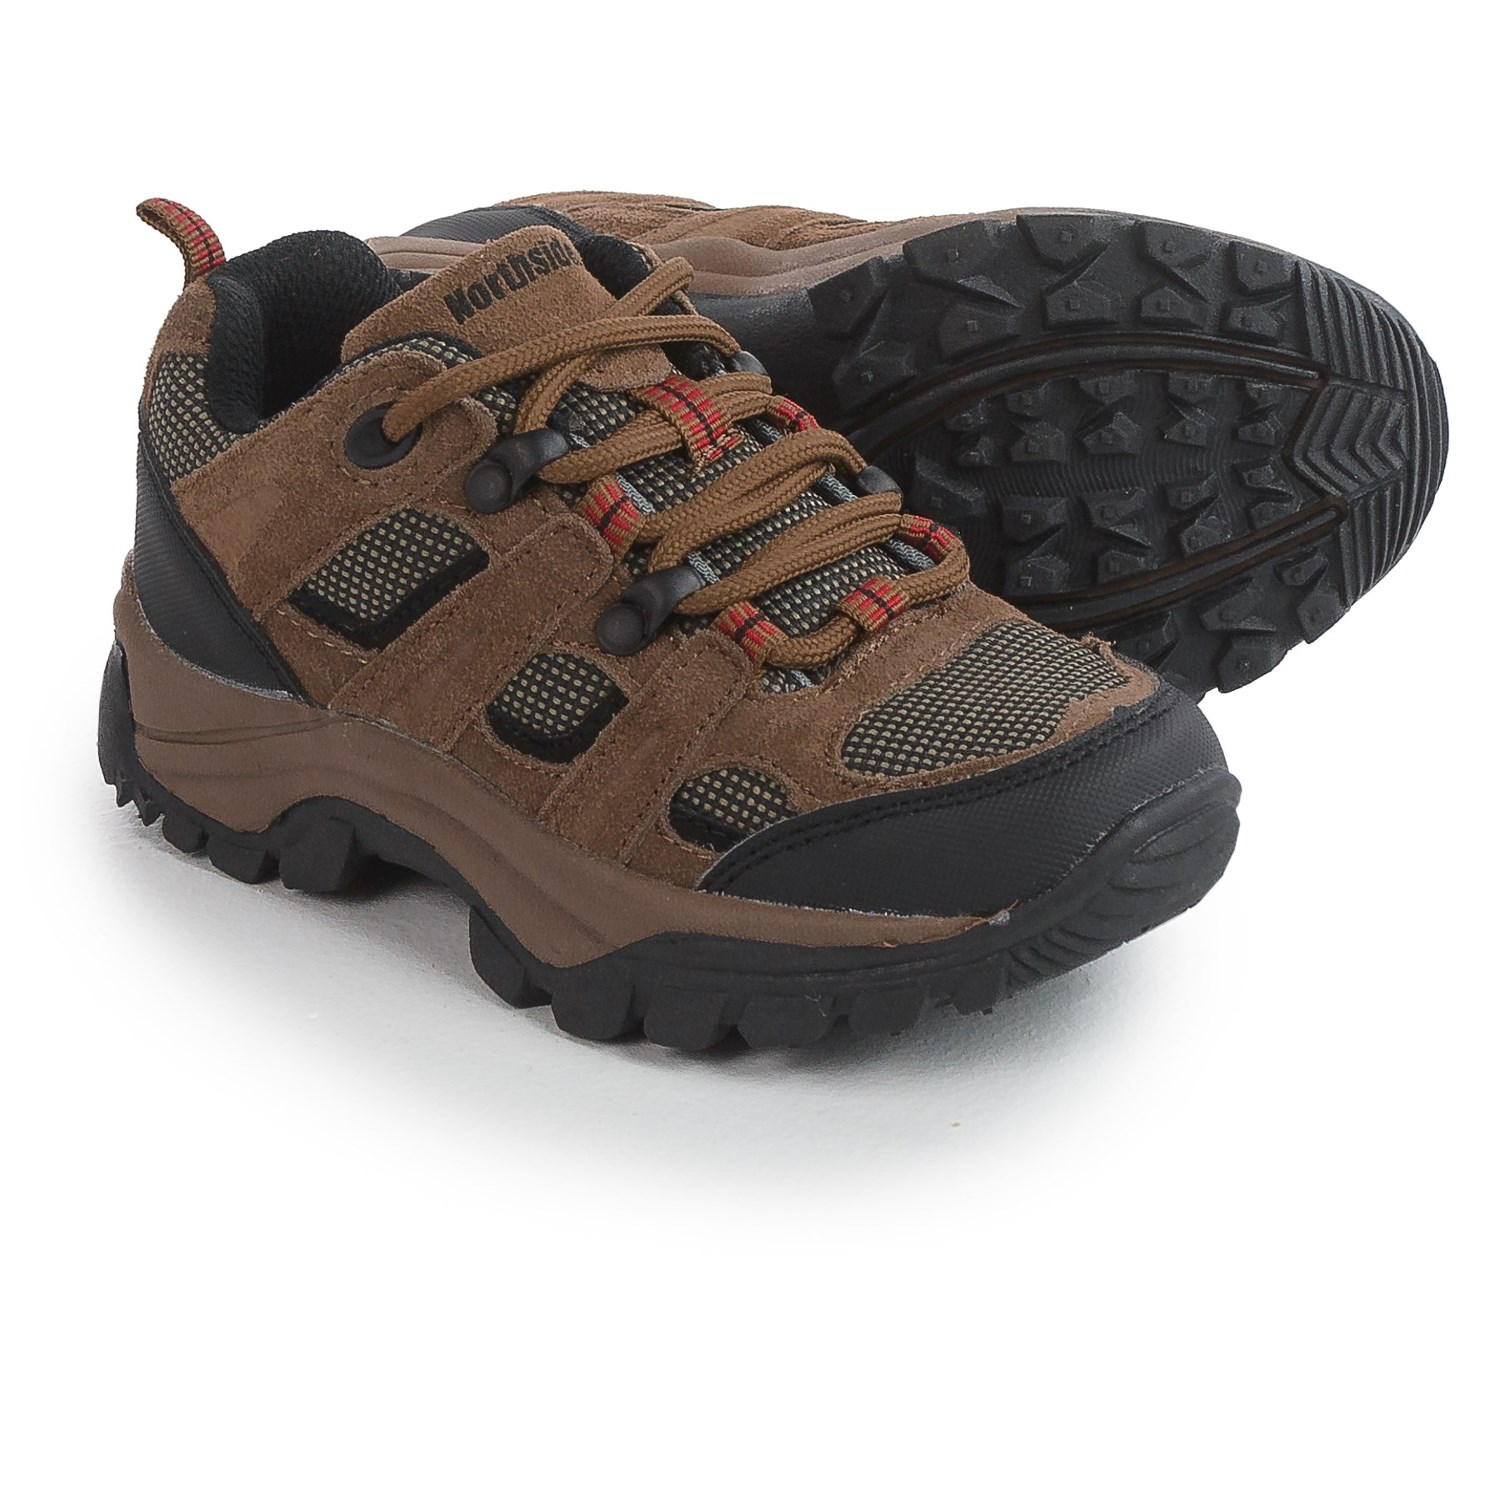 northside low hiking shoes for and big boys